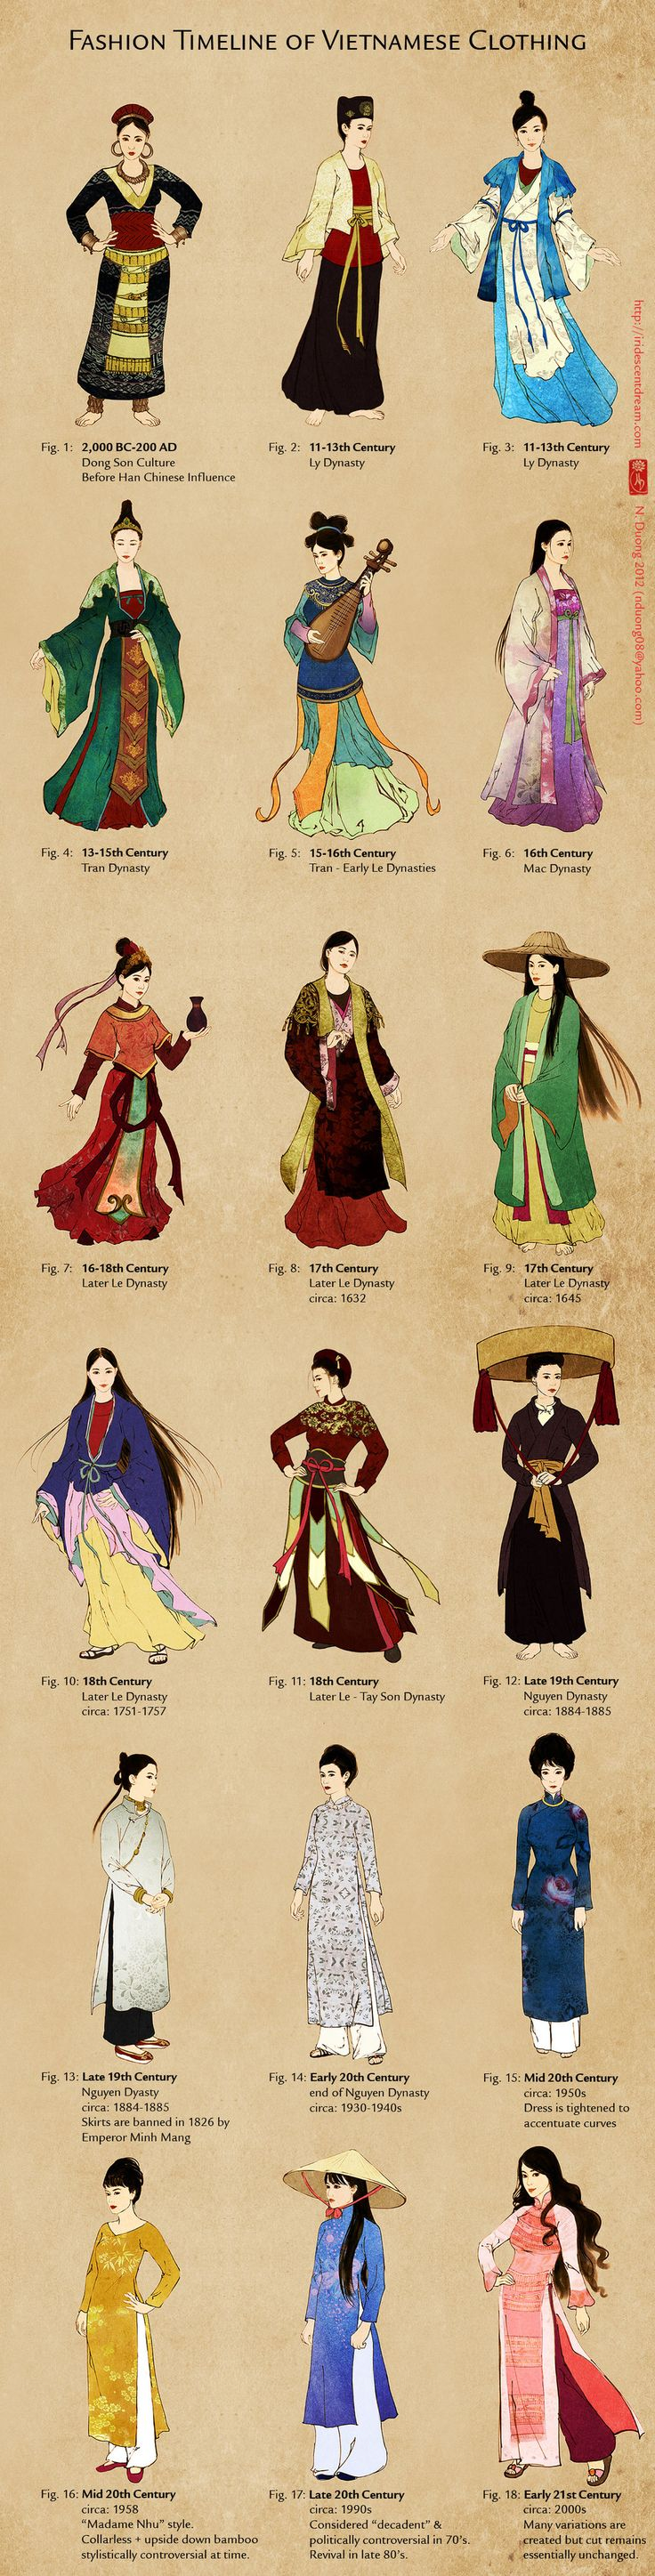 Vietnamese clothing